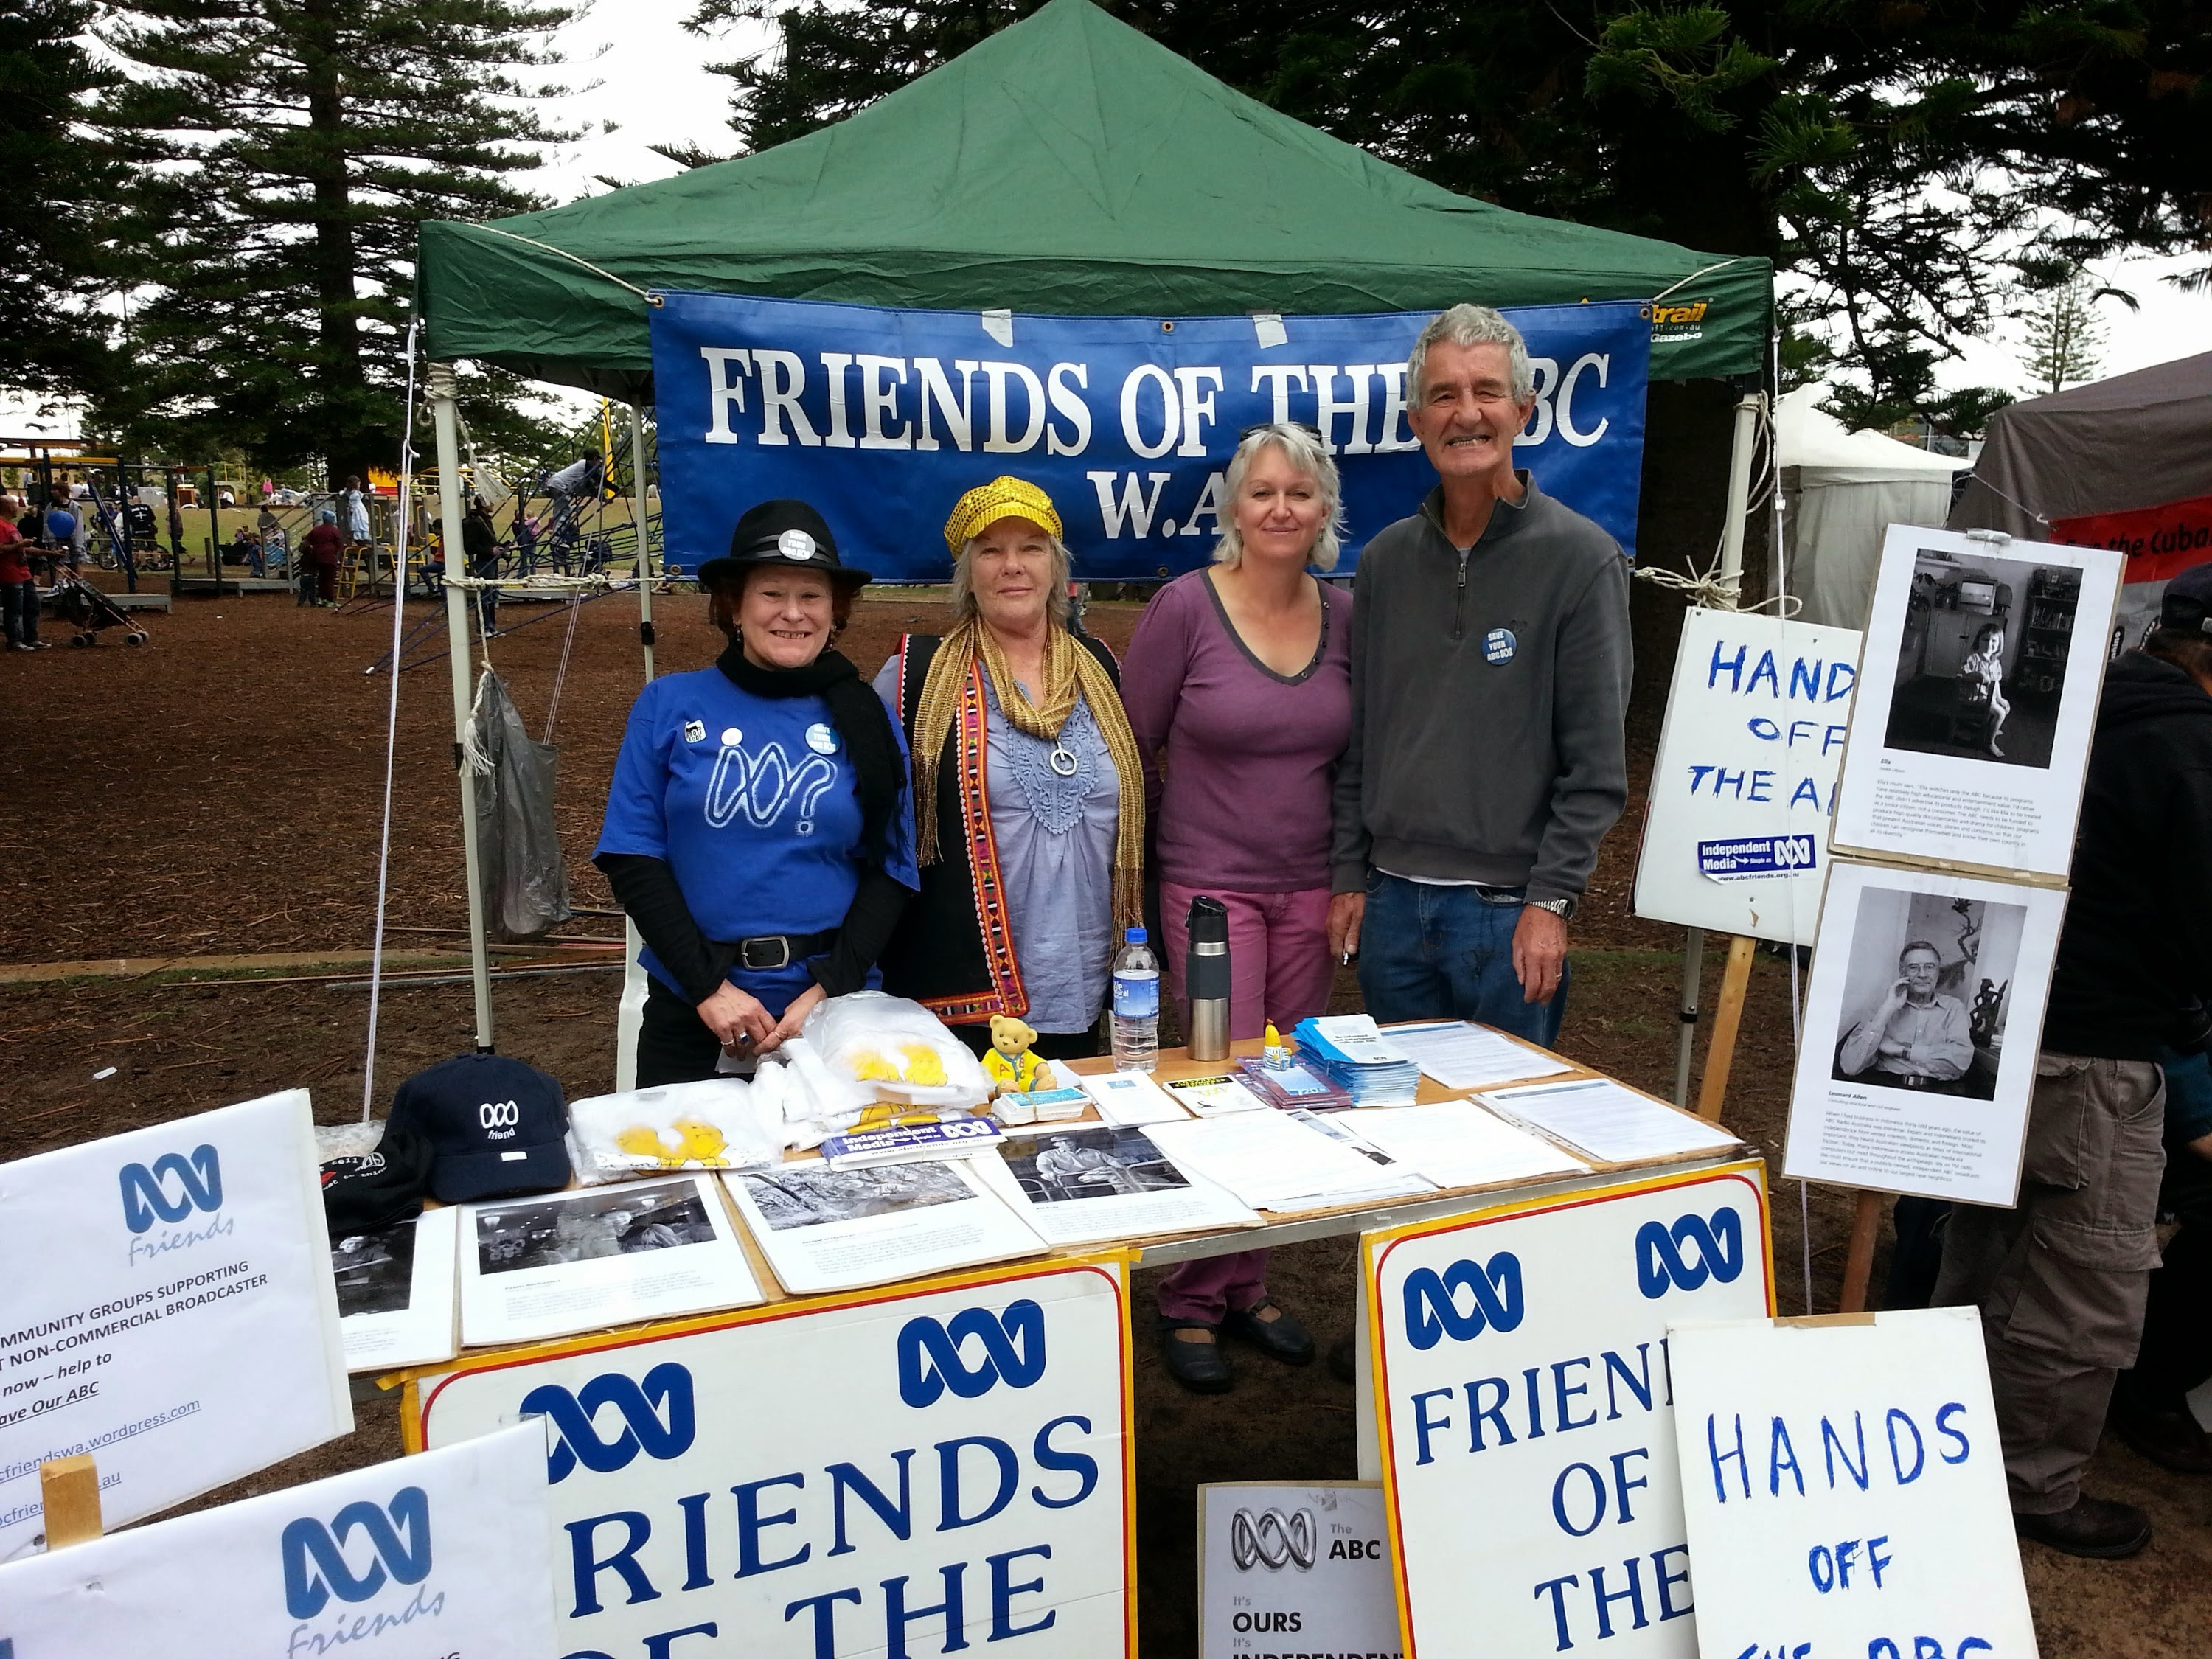 Friends of the ABC in front of their stall at the May Day Festival